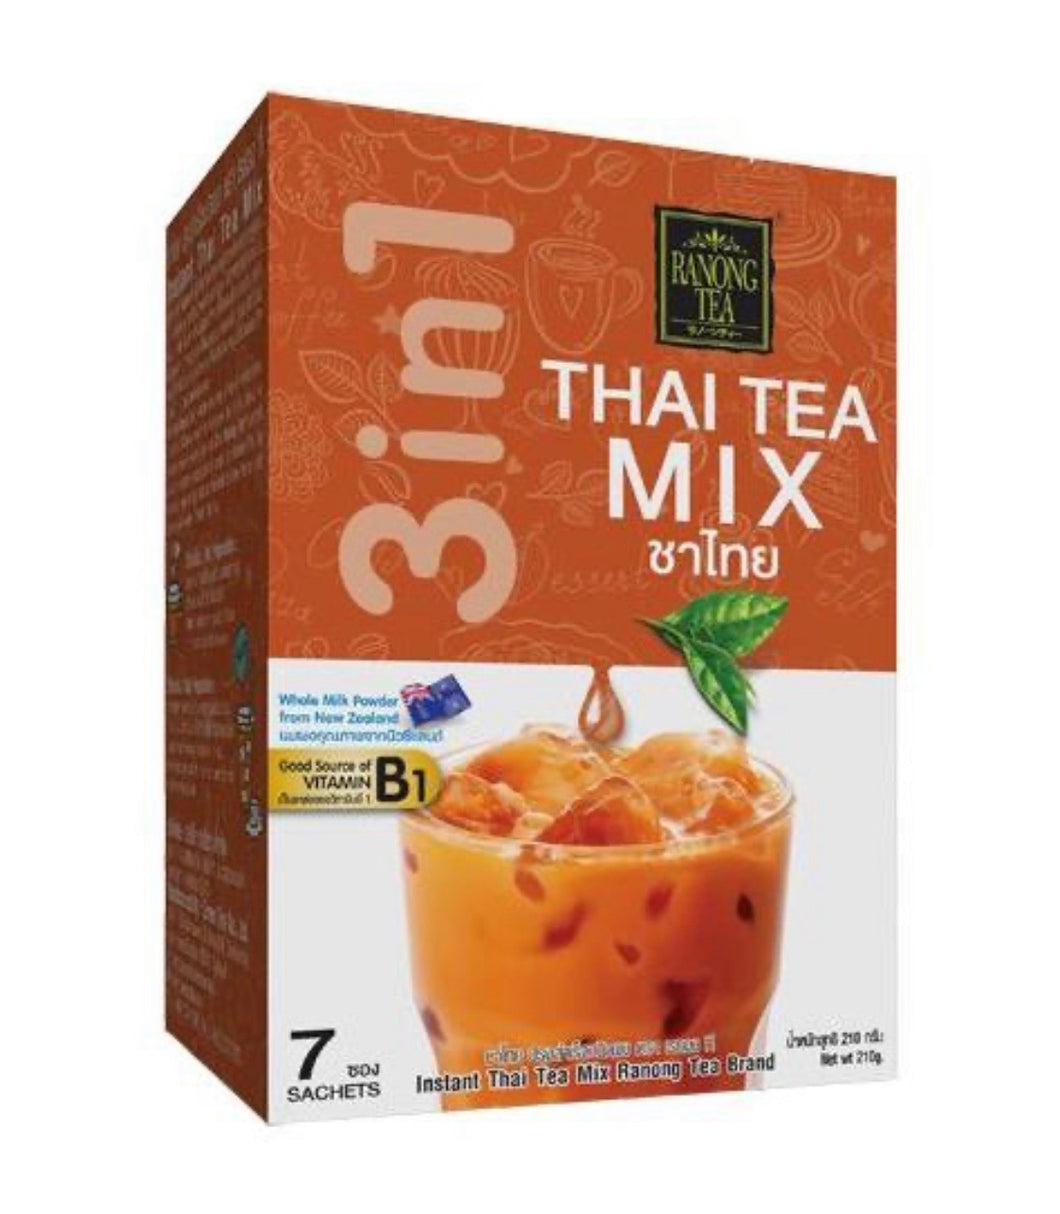 RANONG TEA Thai Tea Mix 7x23g (泰奶茶)